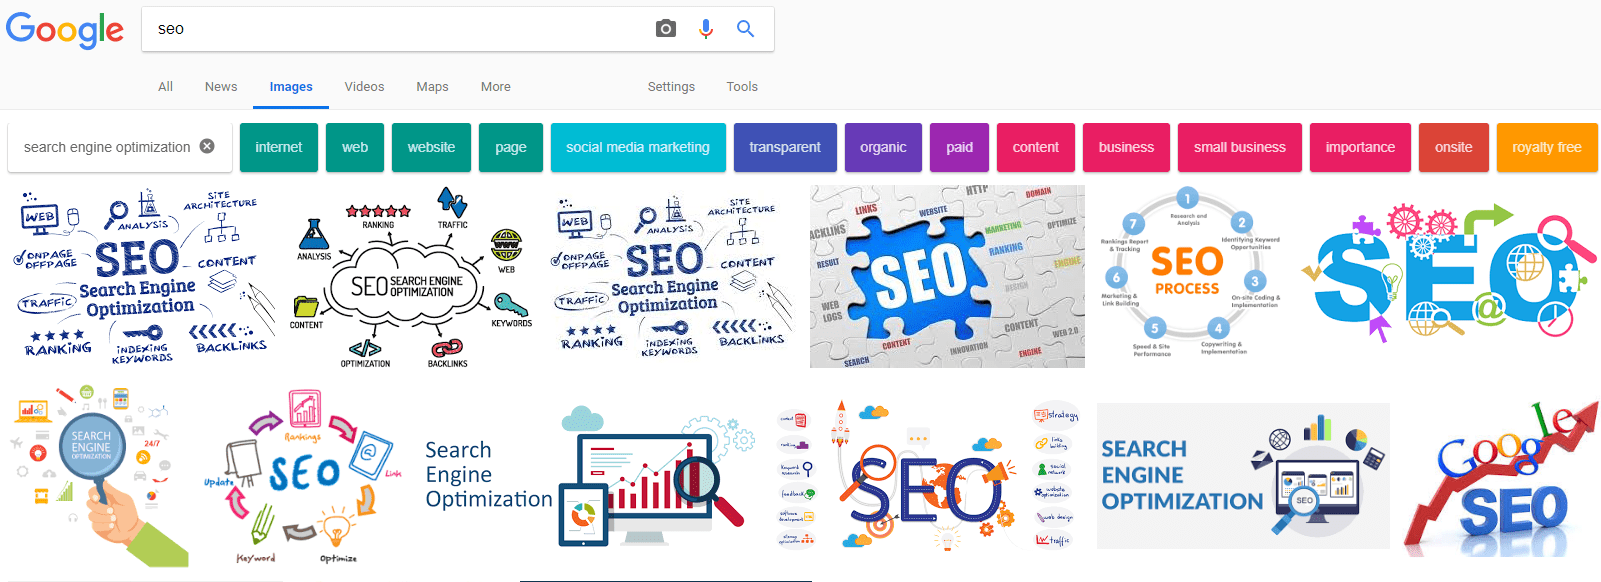 3 Creative Uses of Google Image Search to Boost Traffic & Acquire Links